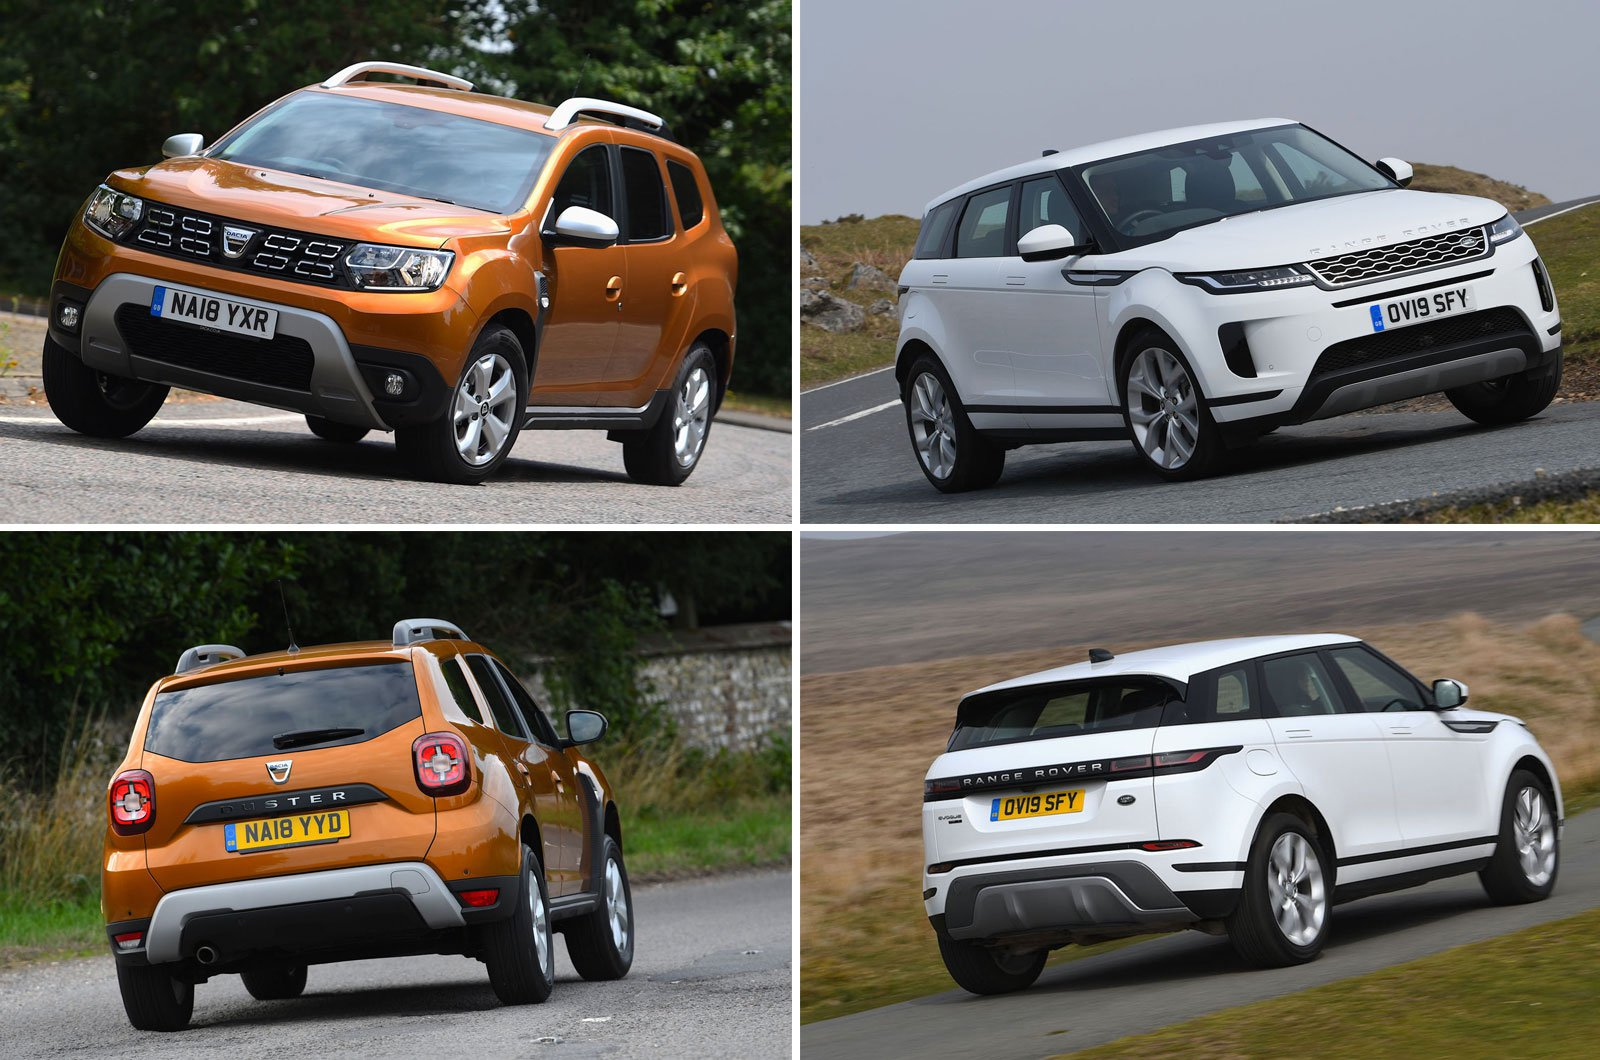 Range Rover Evoque and Dacia Duster